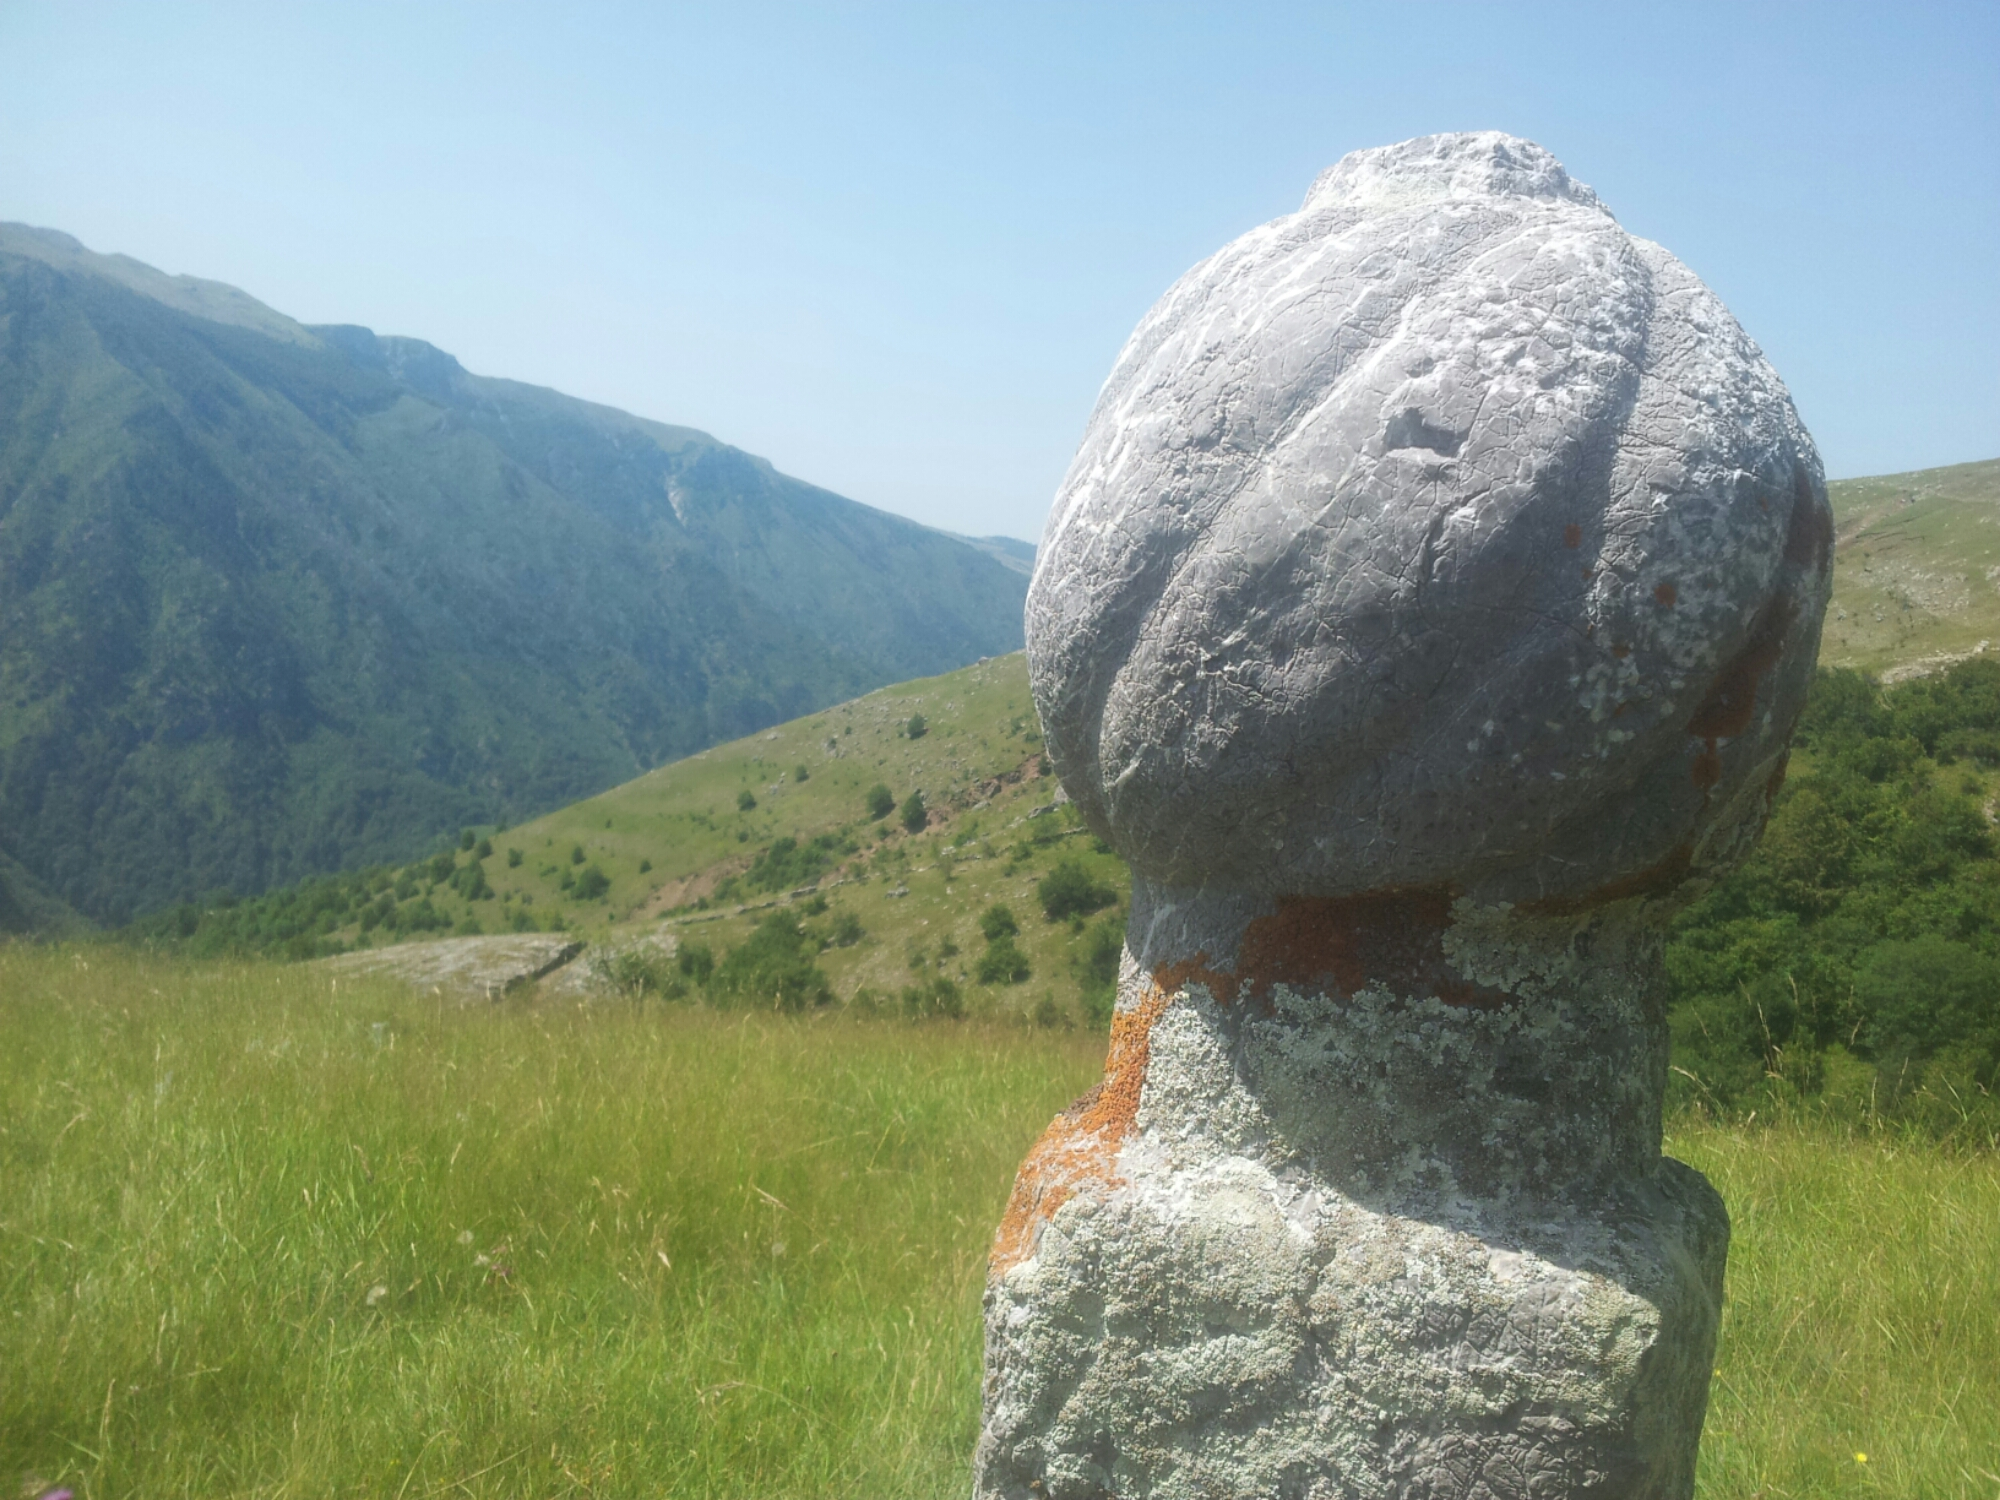 hiking_via_dinarica_to_lukomir_bosnia_herzegovina